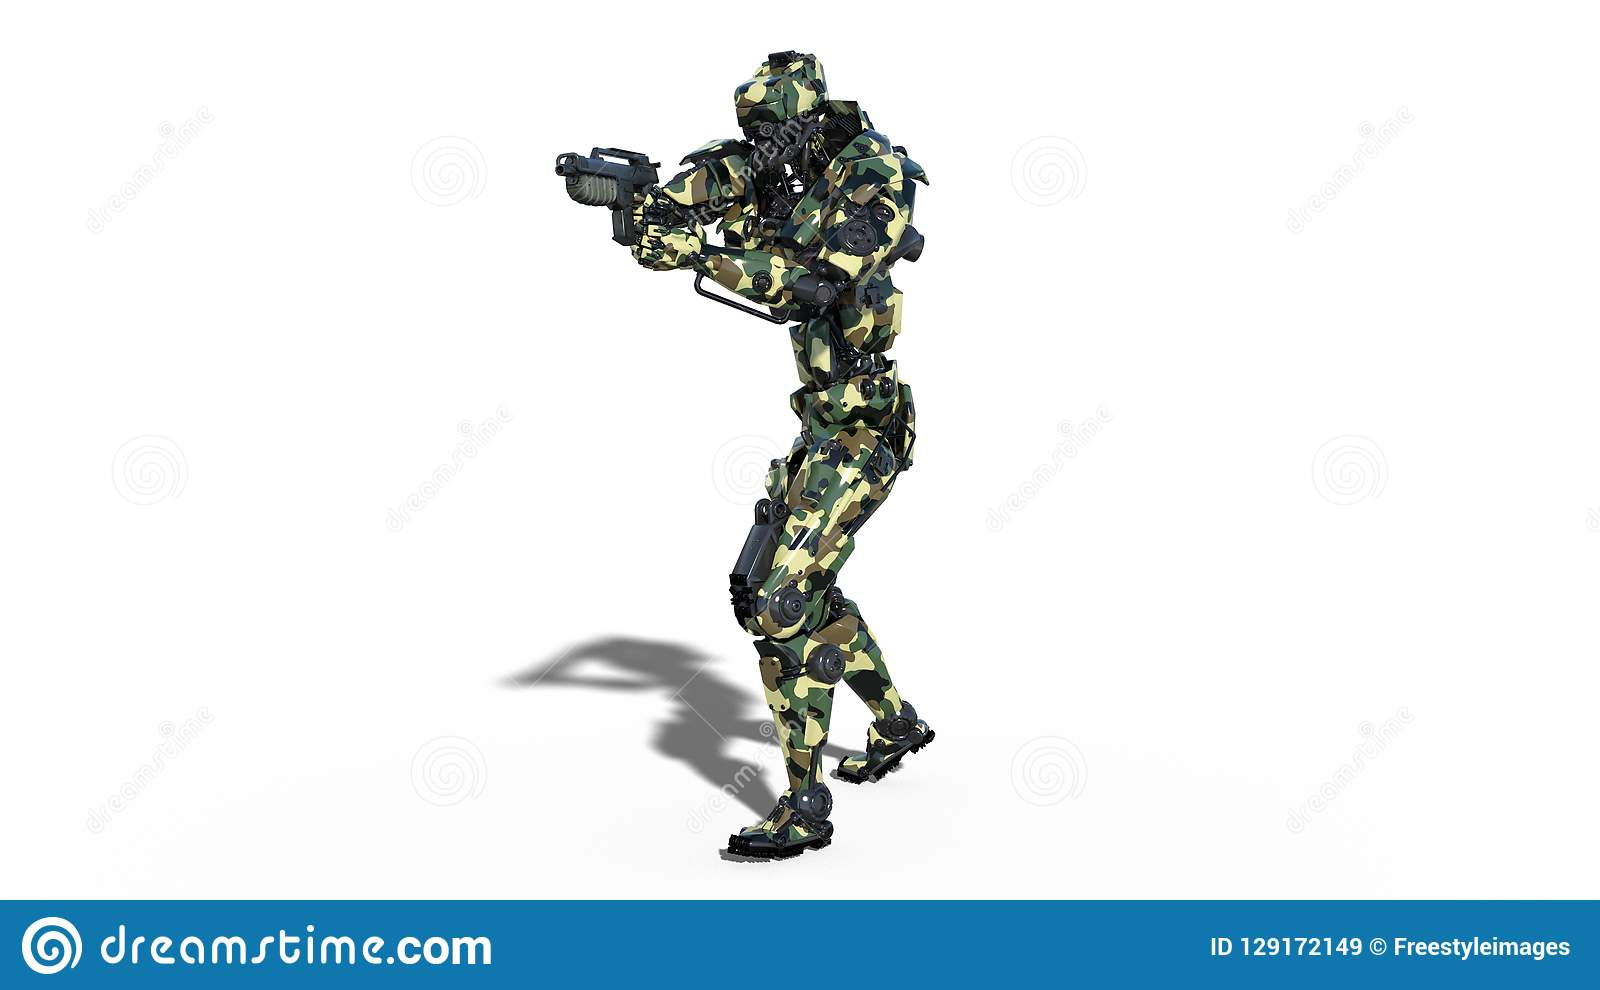 Army robot, armed forces cyborg, military android soldier shooting gun on white background, front view, 3D render